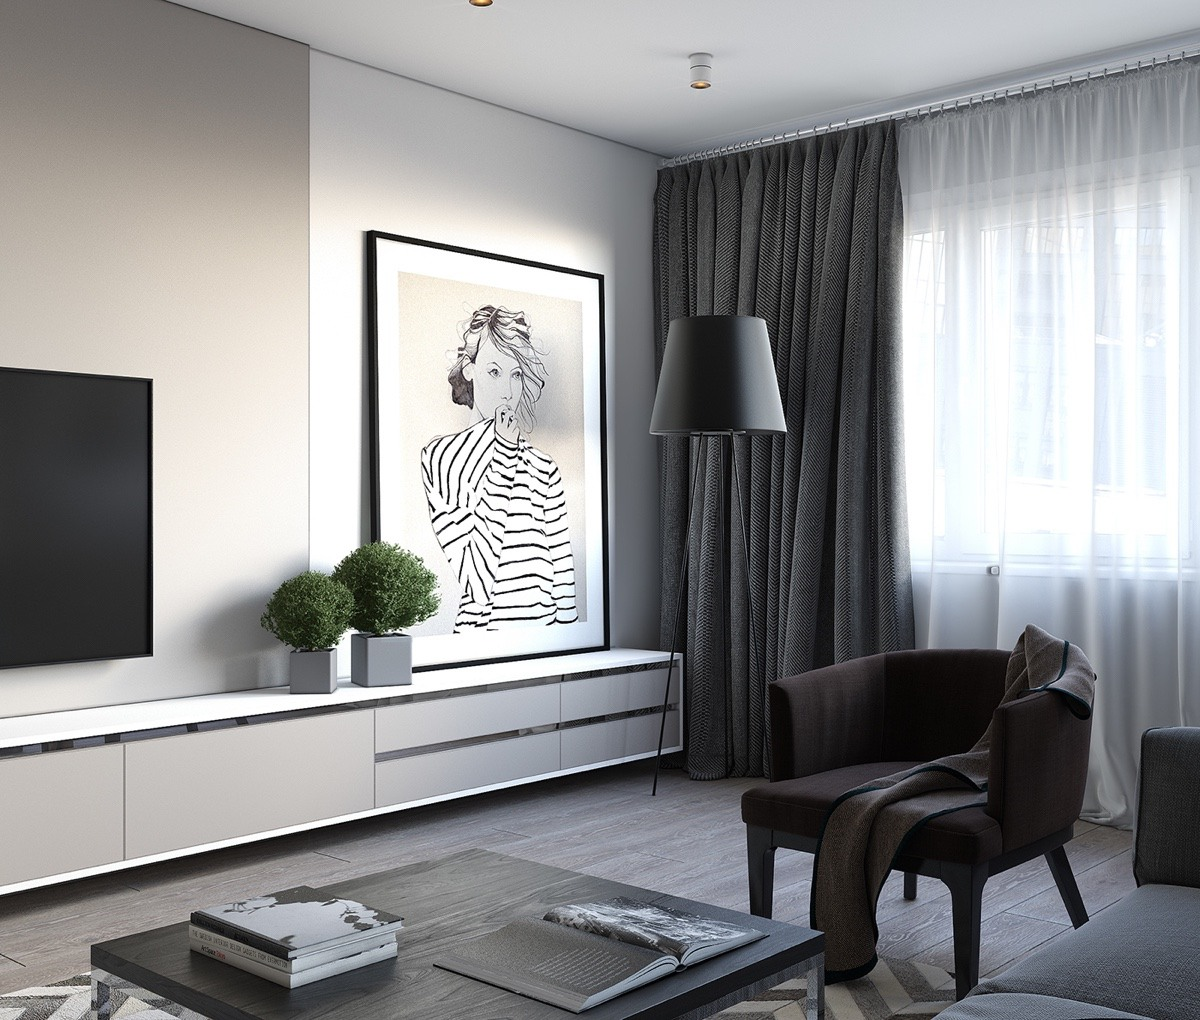 Feature Illustration Contemporary TV Room Apartment - Spacious looking one bedroom apartment with dark wood accents